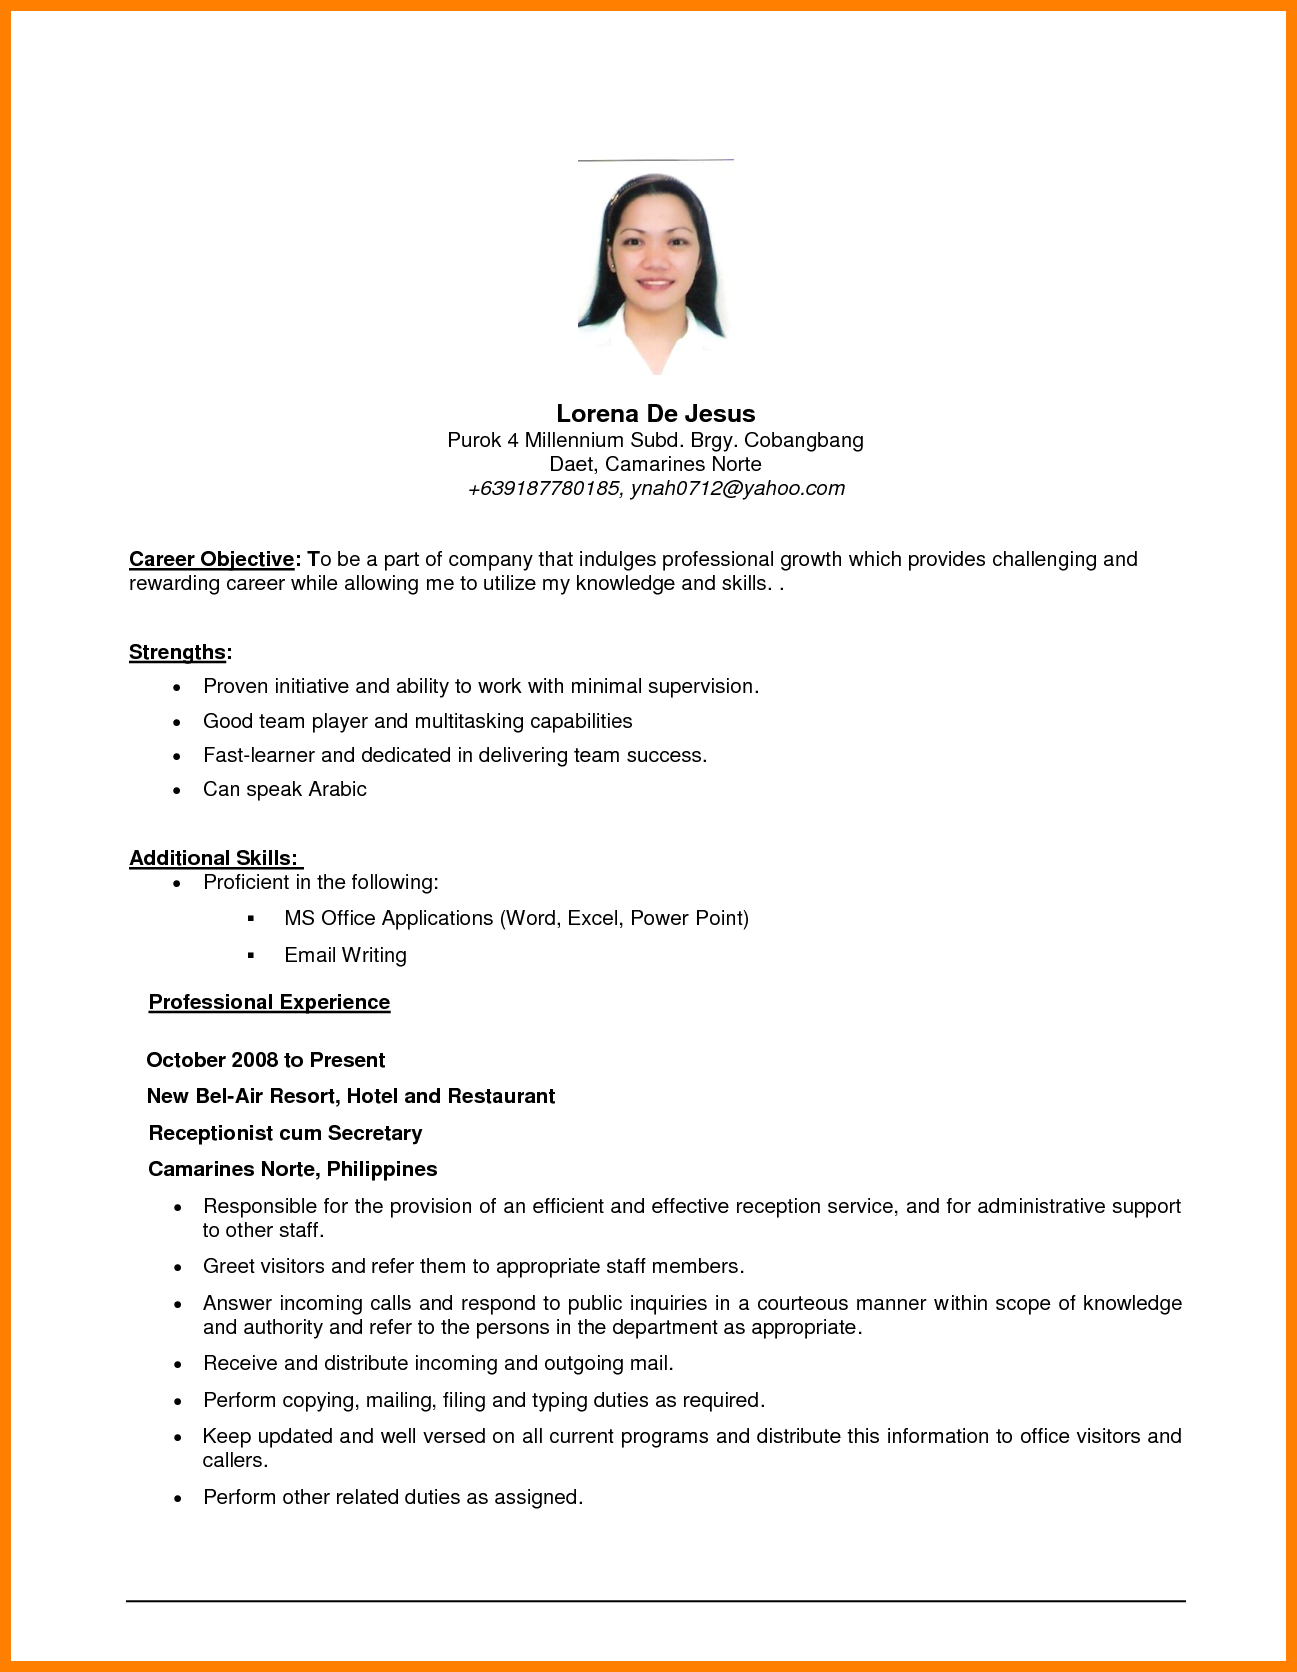 objectives sample resumes Yeni.mescale.co